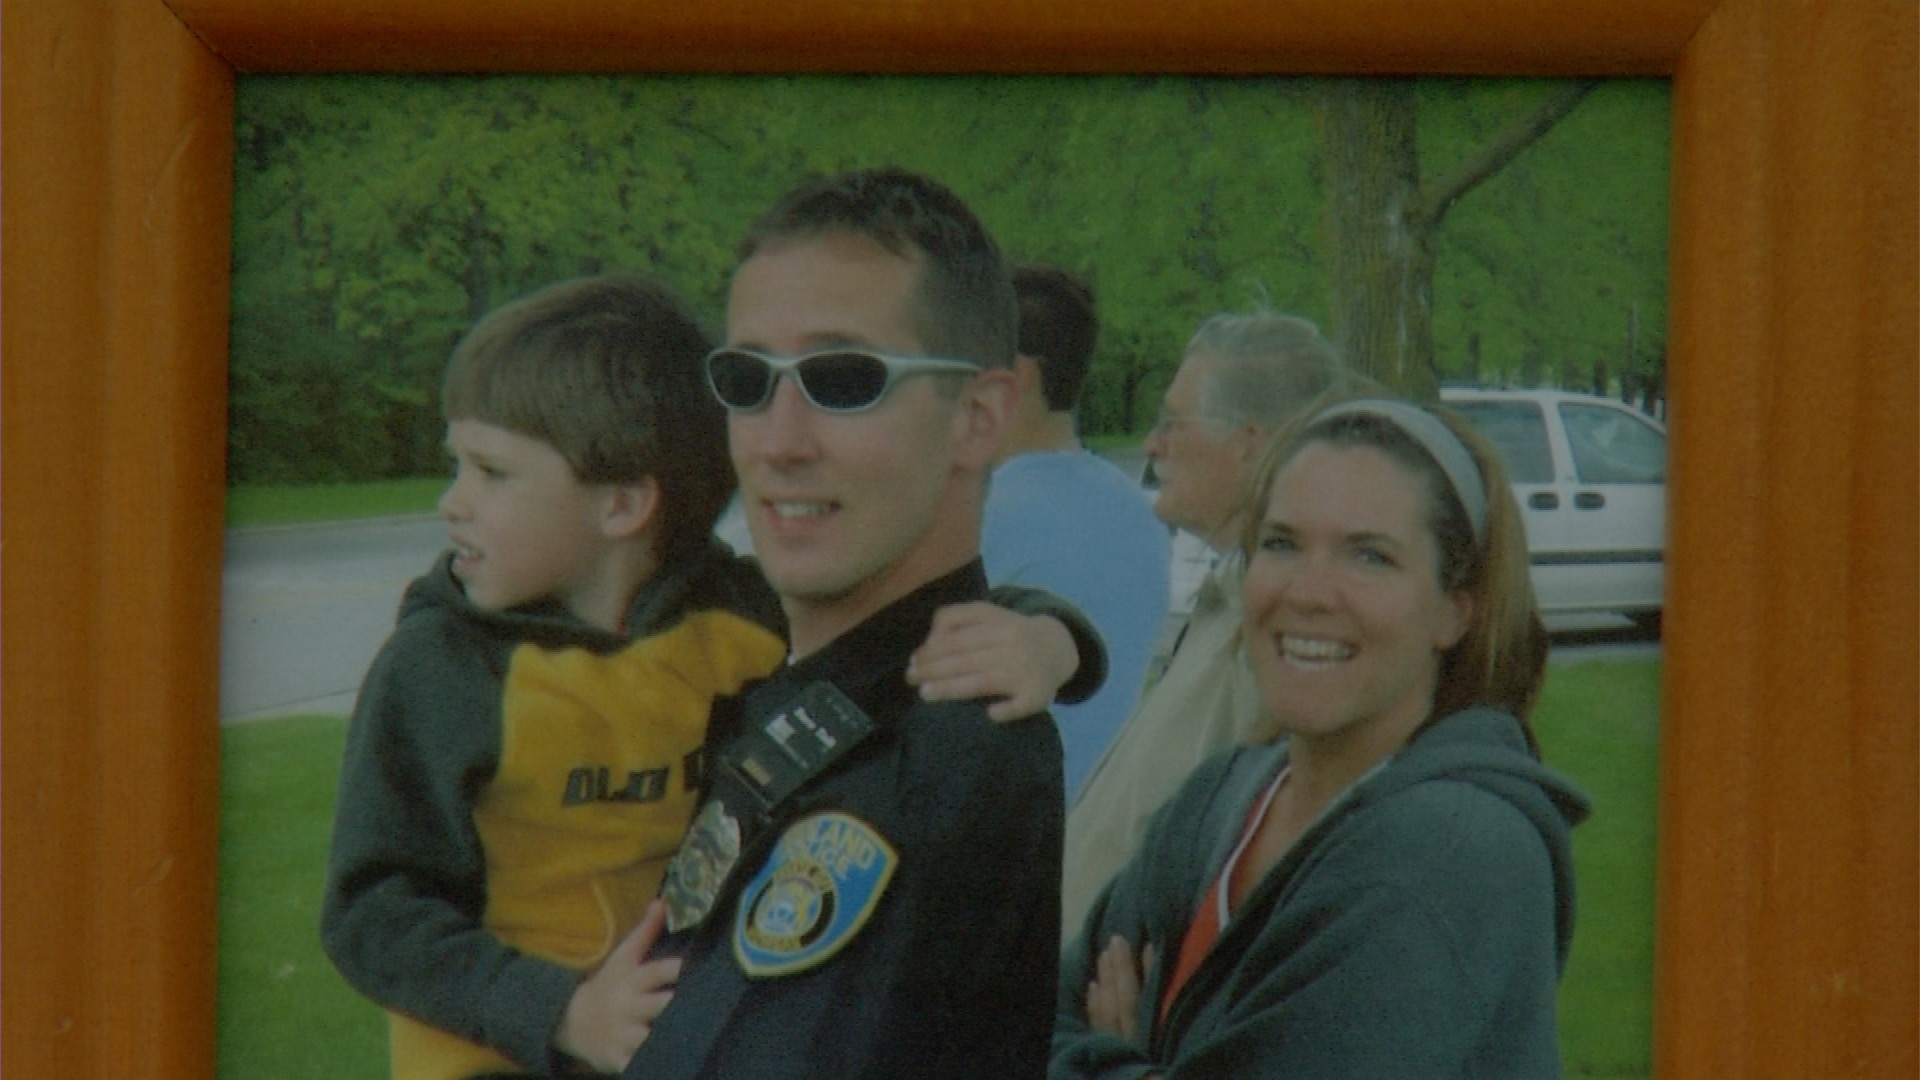 Midland Police Surprise Fallen Officers Son At Graduation Party